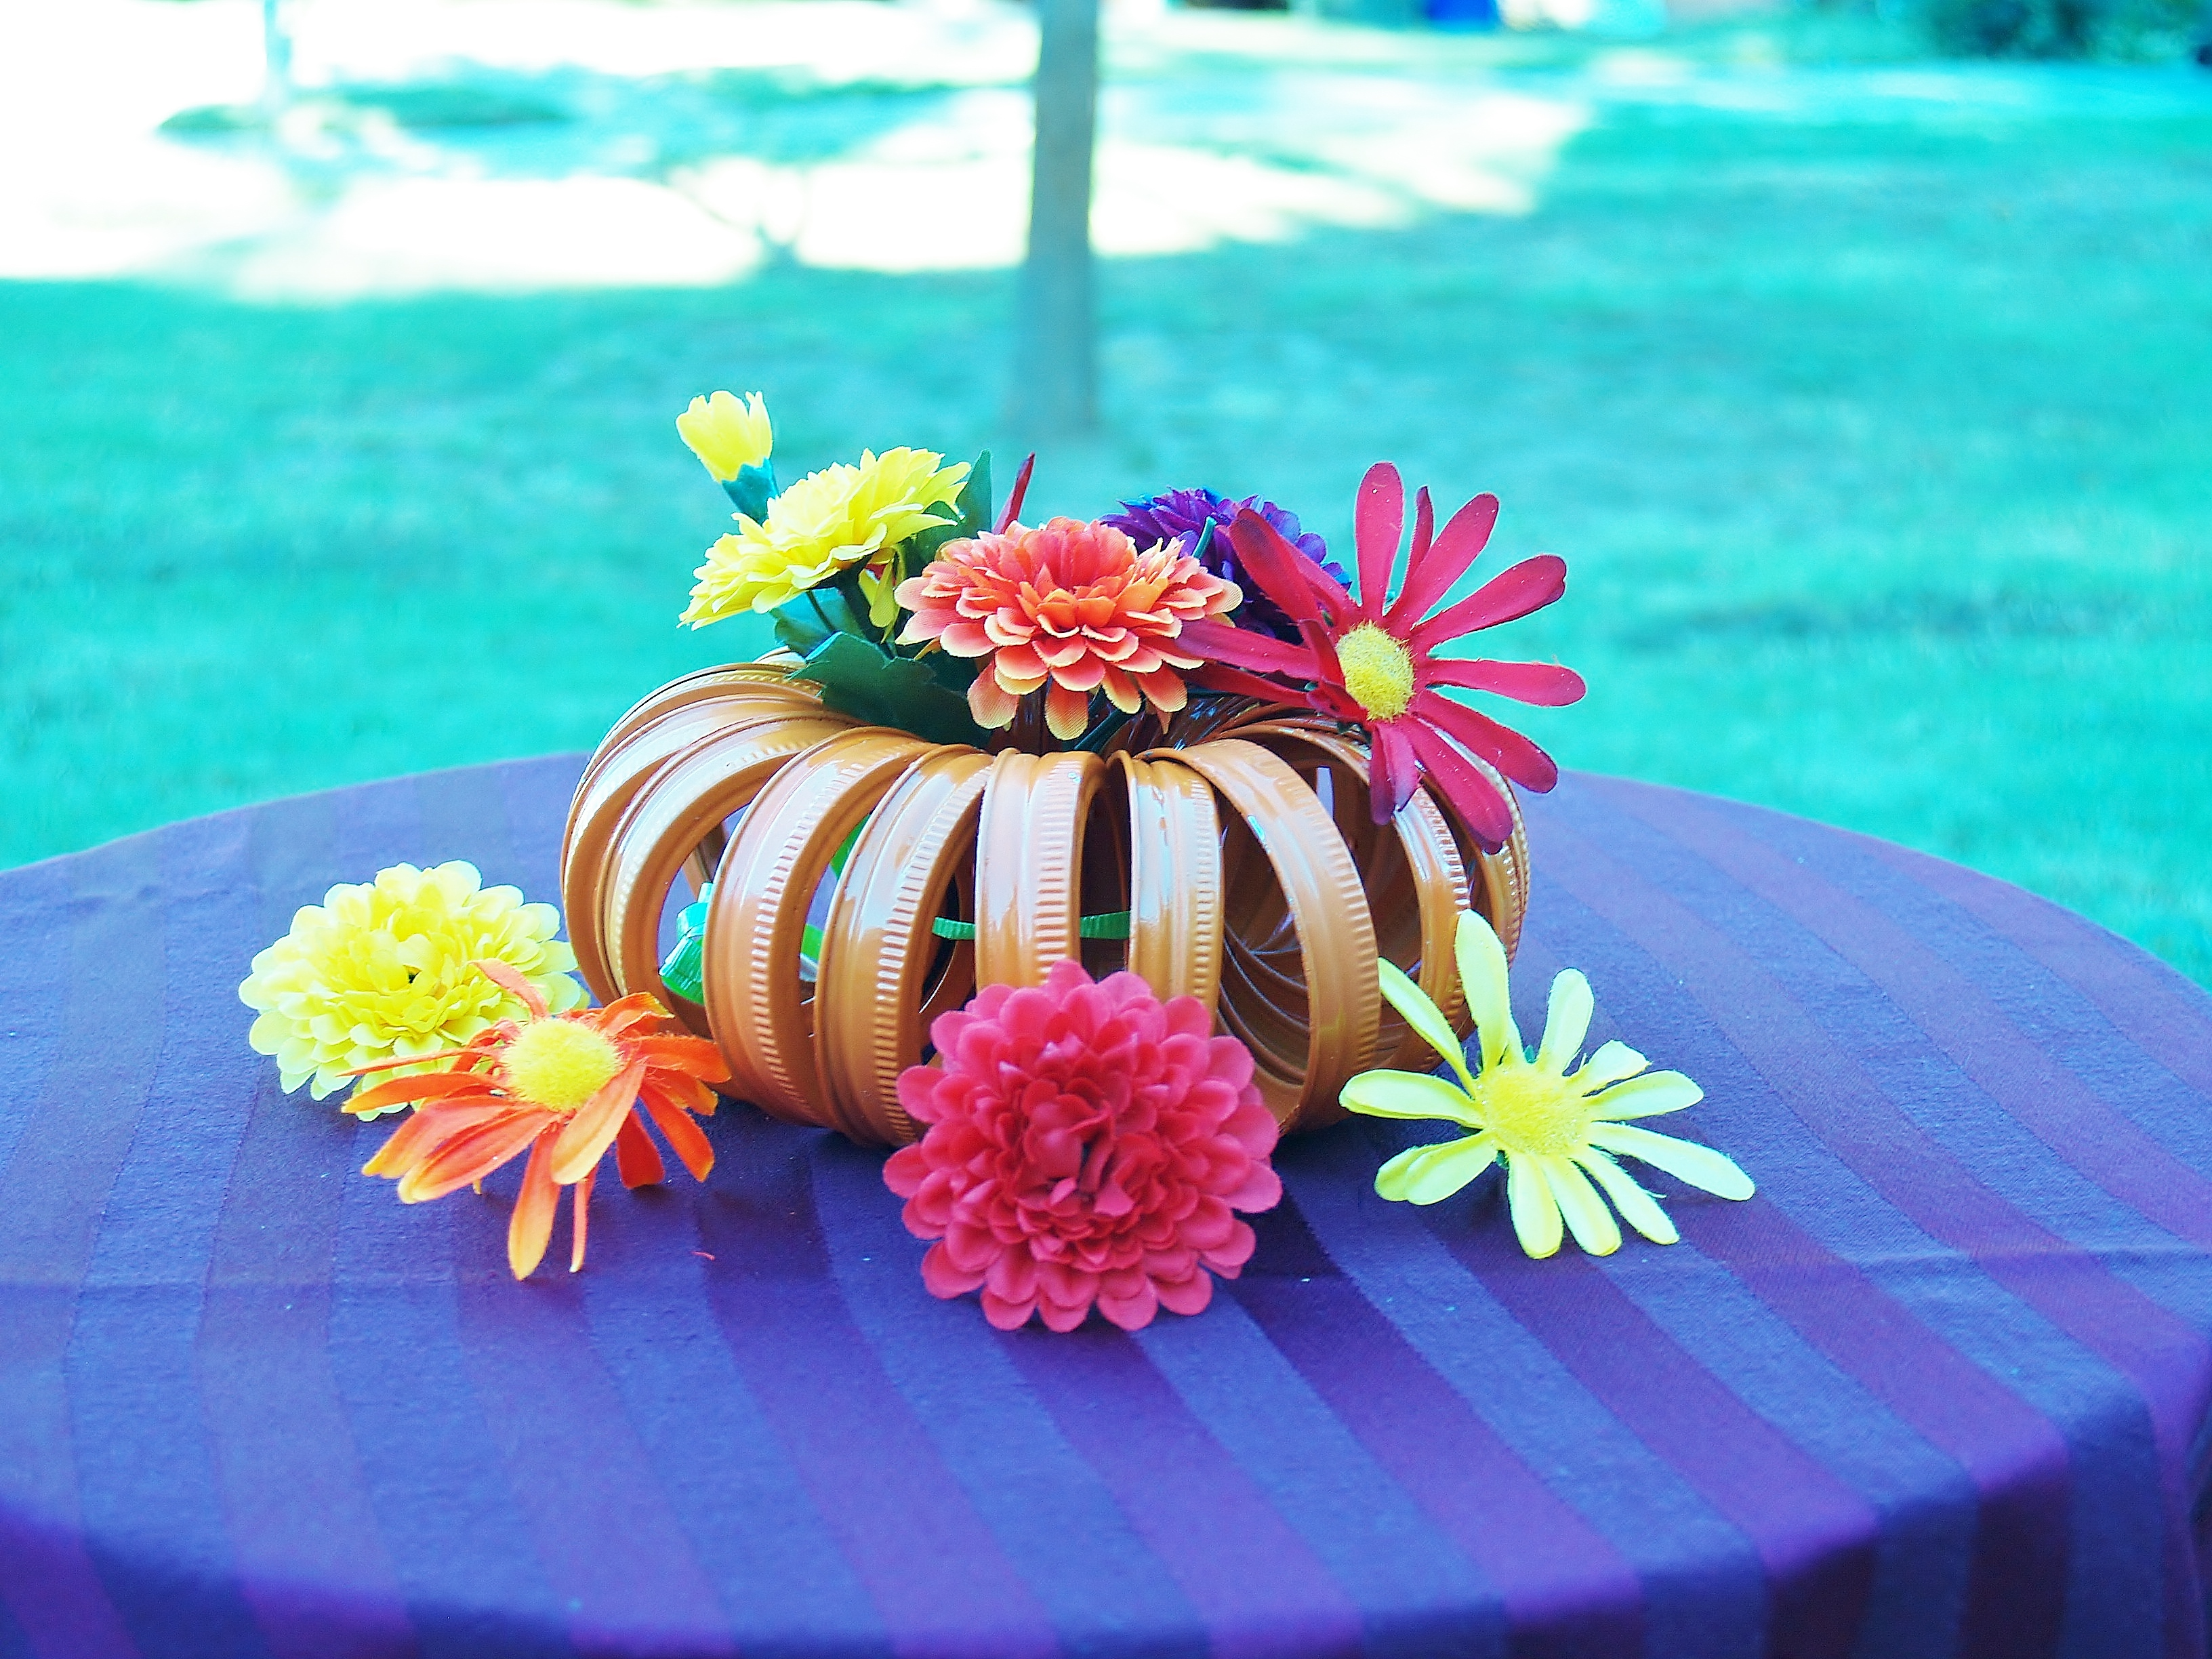 DIY Pumpkin Centerpiece for Autumn